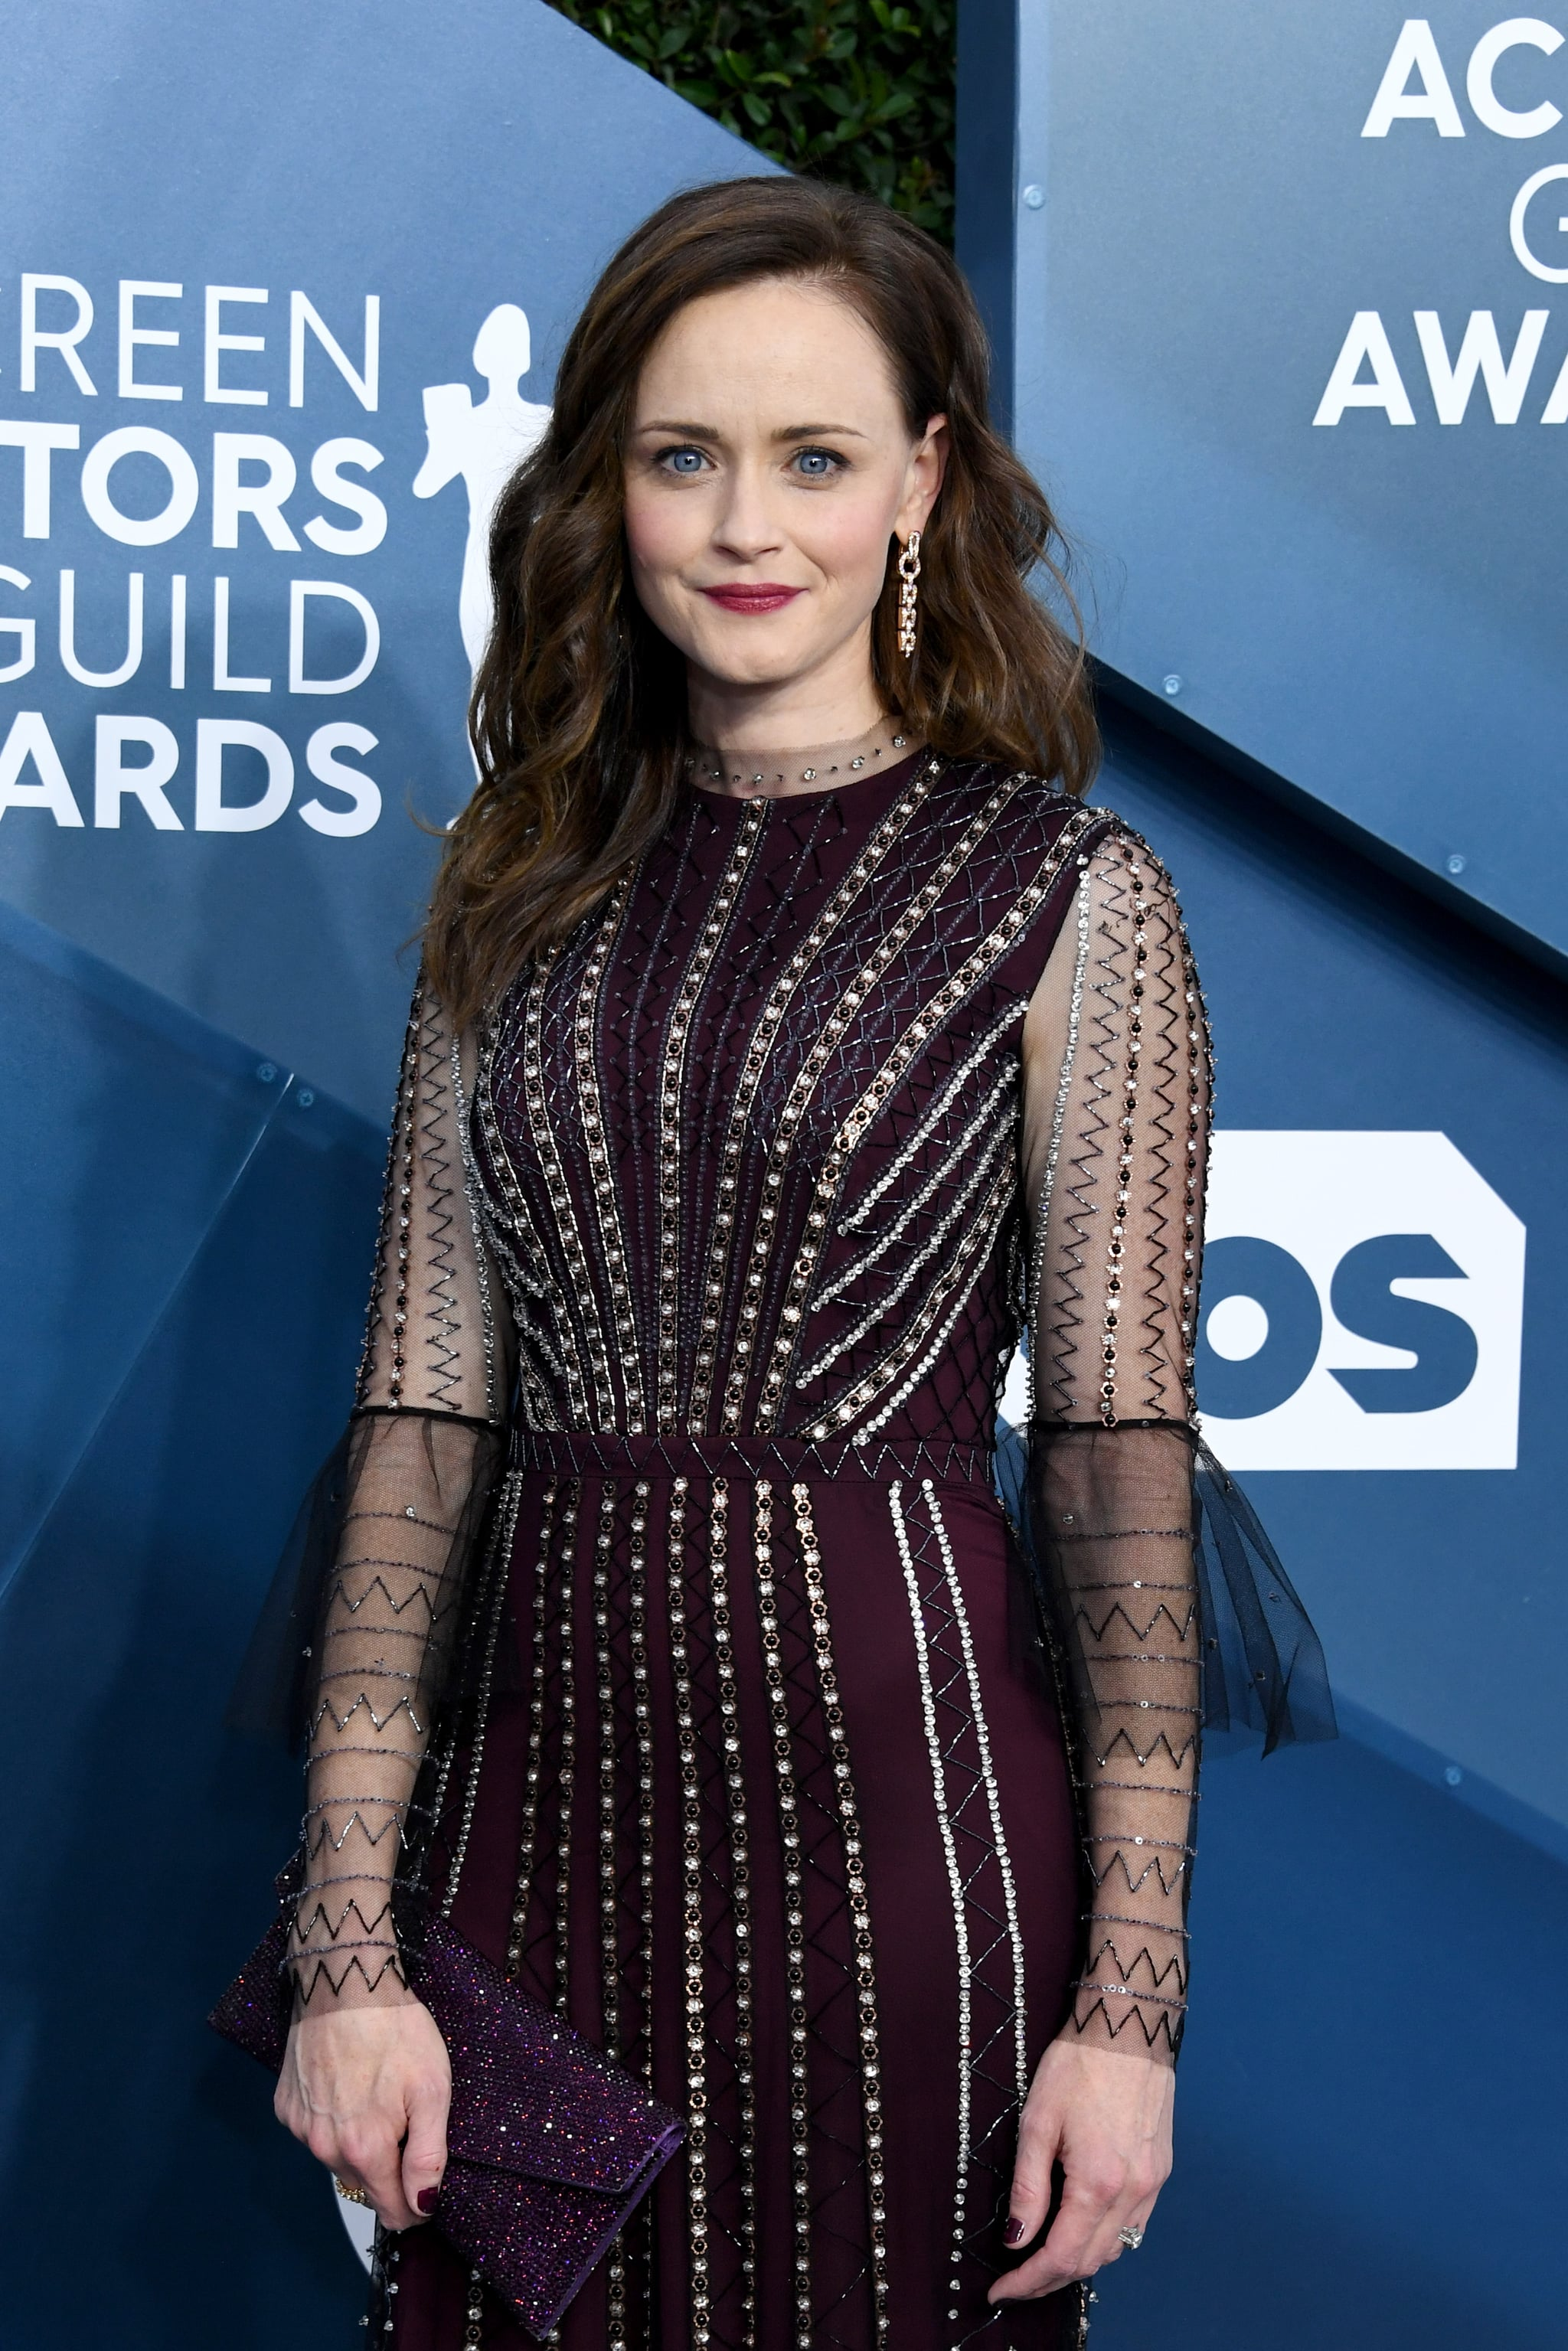 LOS ANGELES, CALIFORNIA - JANUARY 19: Alexis Bledel attends the 26th Annual Screen Actors Guild Awards at The Shrine Auditorium on January 19, 2020 in Los Angeles, California. (Photo by Jon Kopaloff/Getty Images)